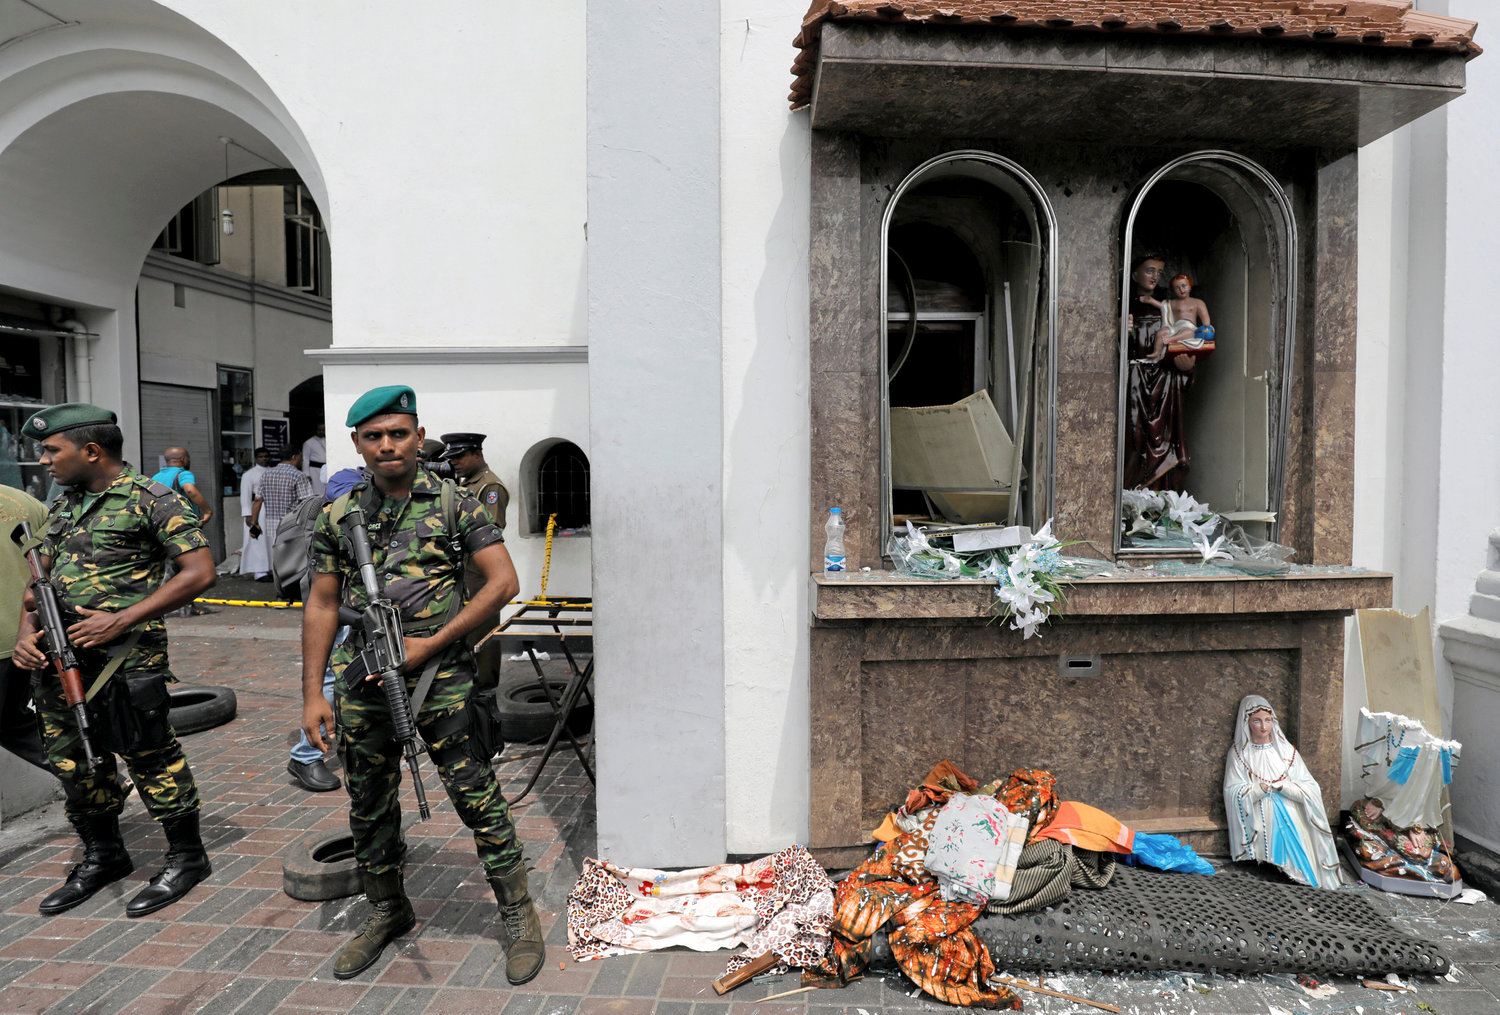 Sri Lankan military officials stand guard at St. Anthony's Shrine in Colombo, Sri Lanka, April 21, 2019. Sri Lankan officials reported 290 confirmed deaths from eight blasts at churches and hotels in three cities in apparently coordinated Easter attacks.